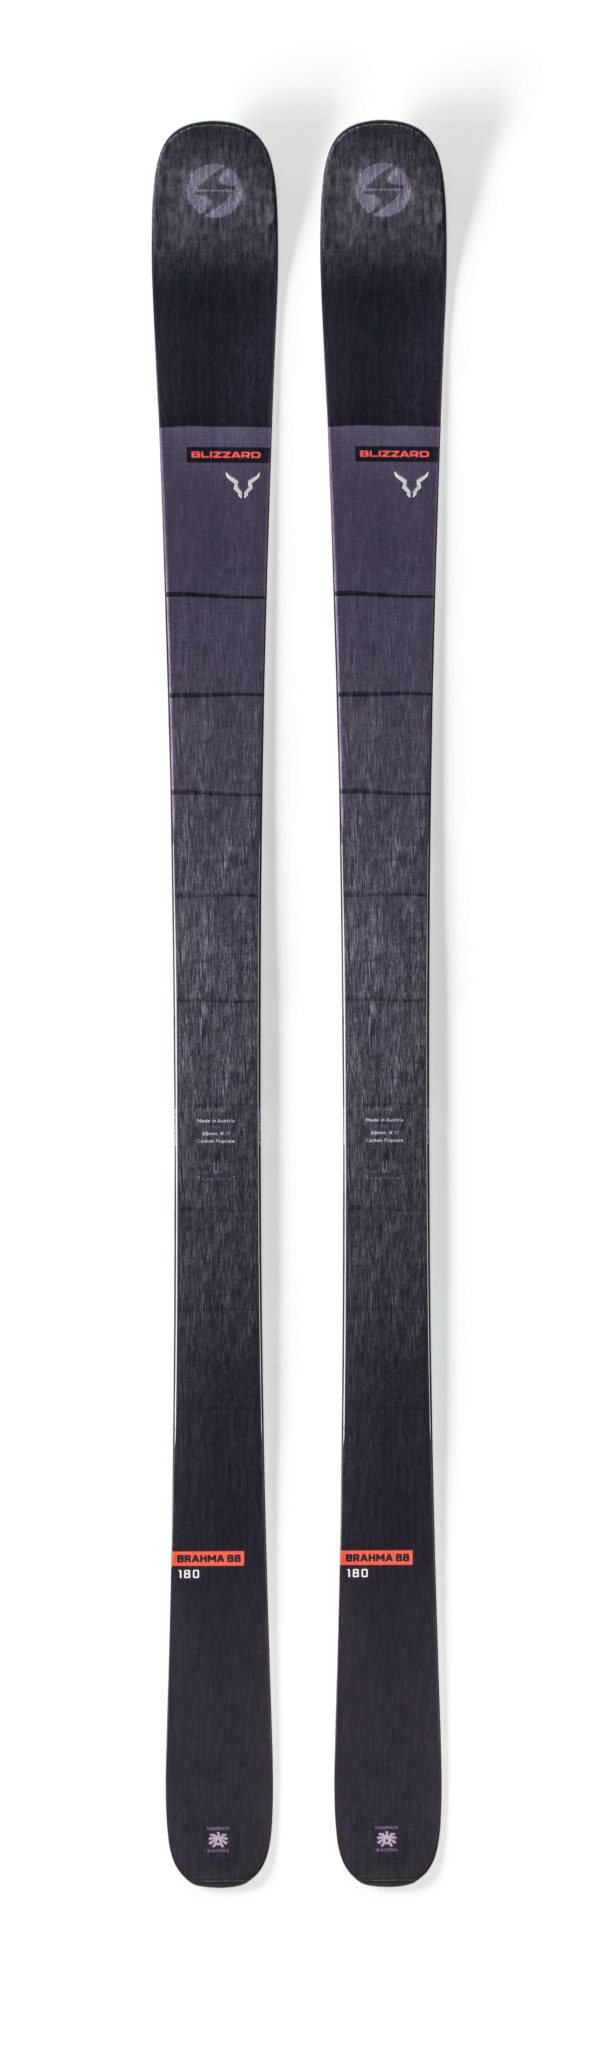 Blizzard Brahma 88 Skis (Flat) 2019-20 at Northern Ski Works